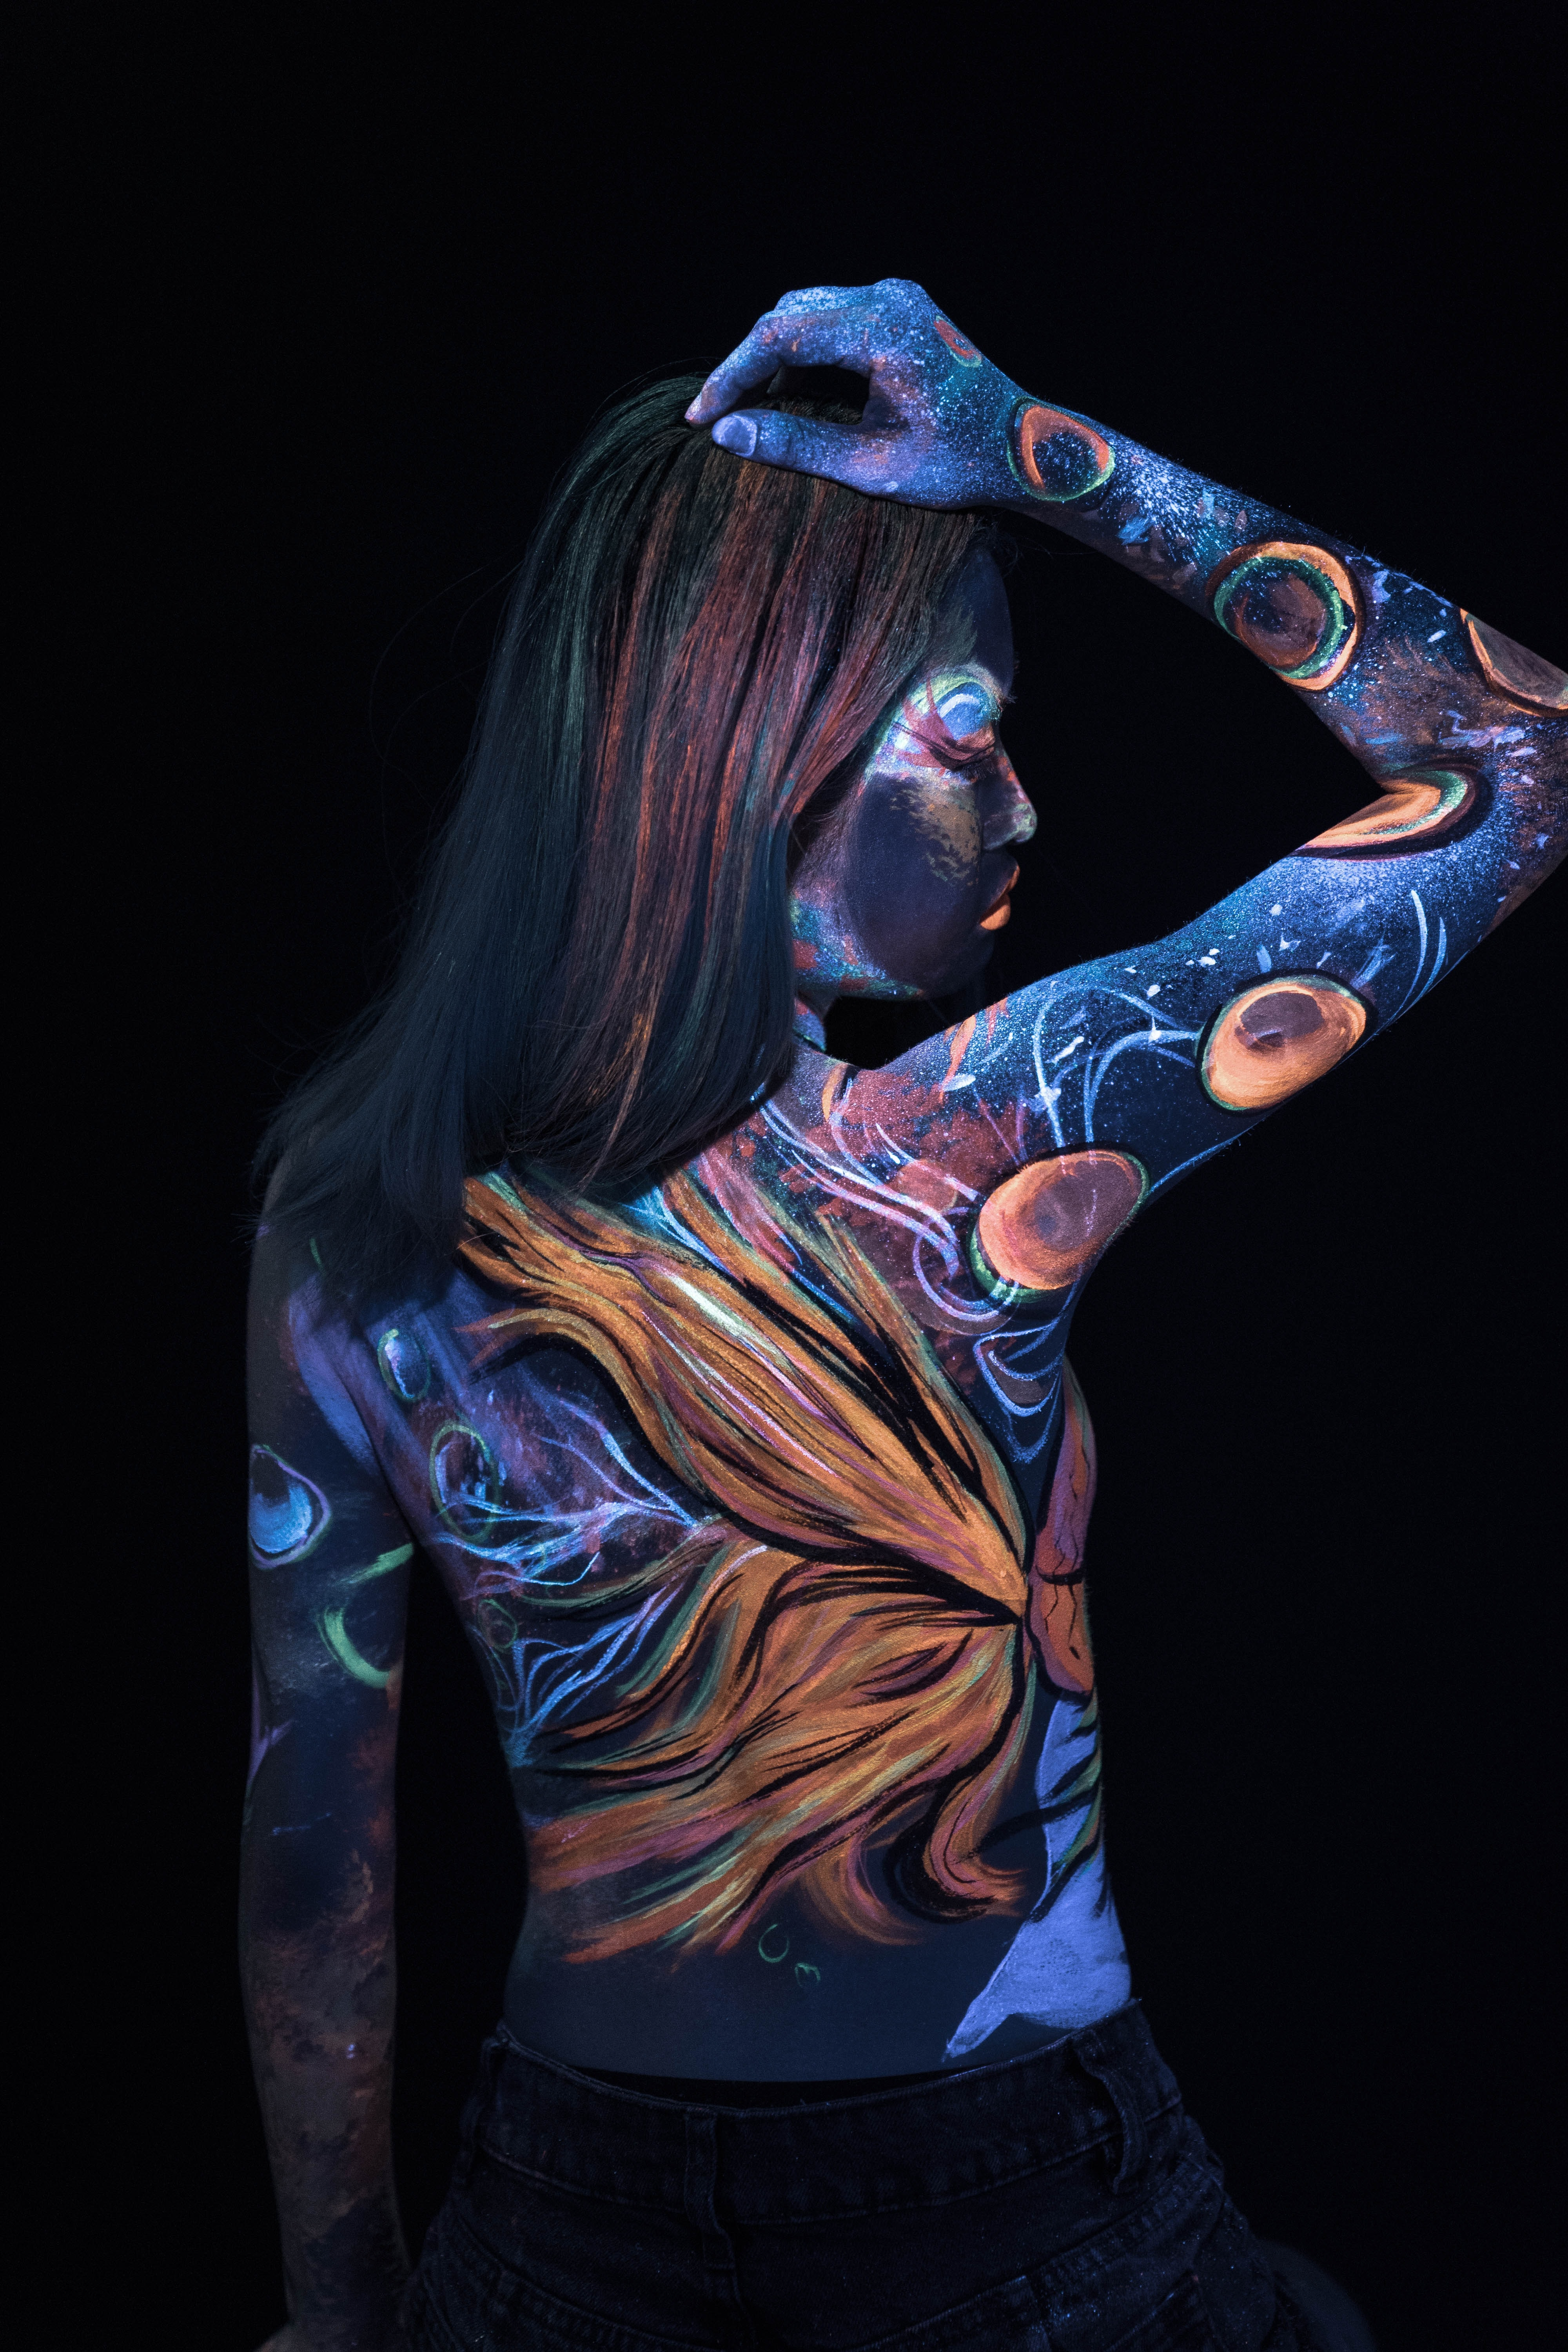 woman with body tattoo standing in the dark